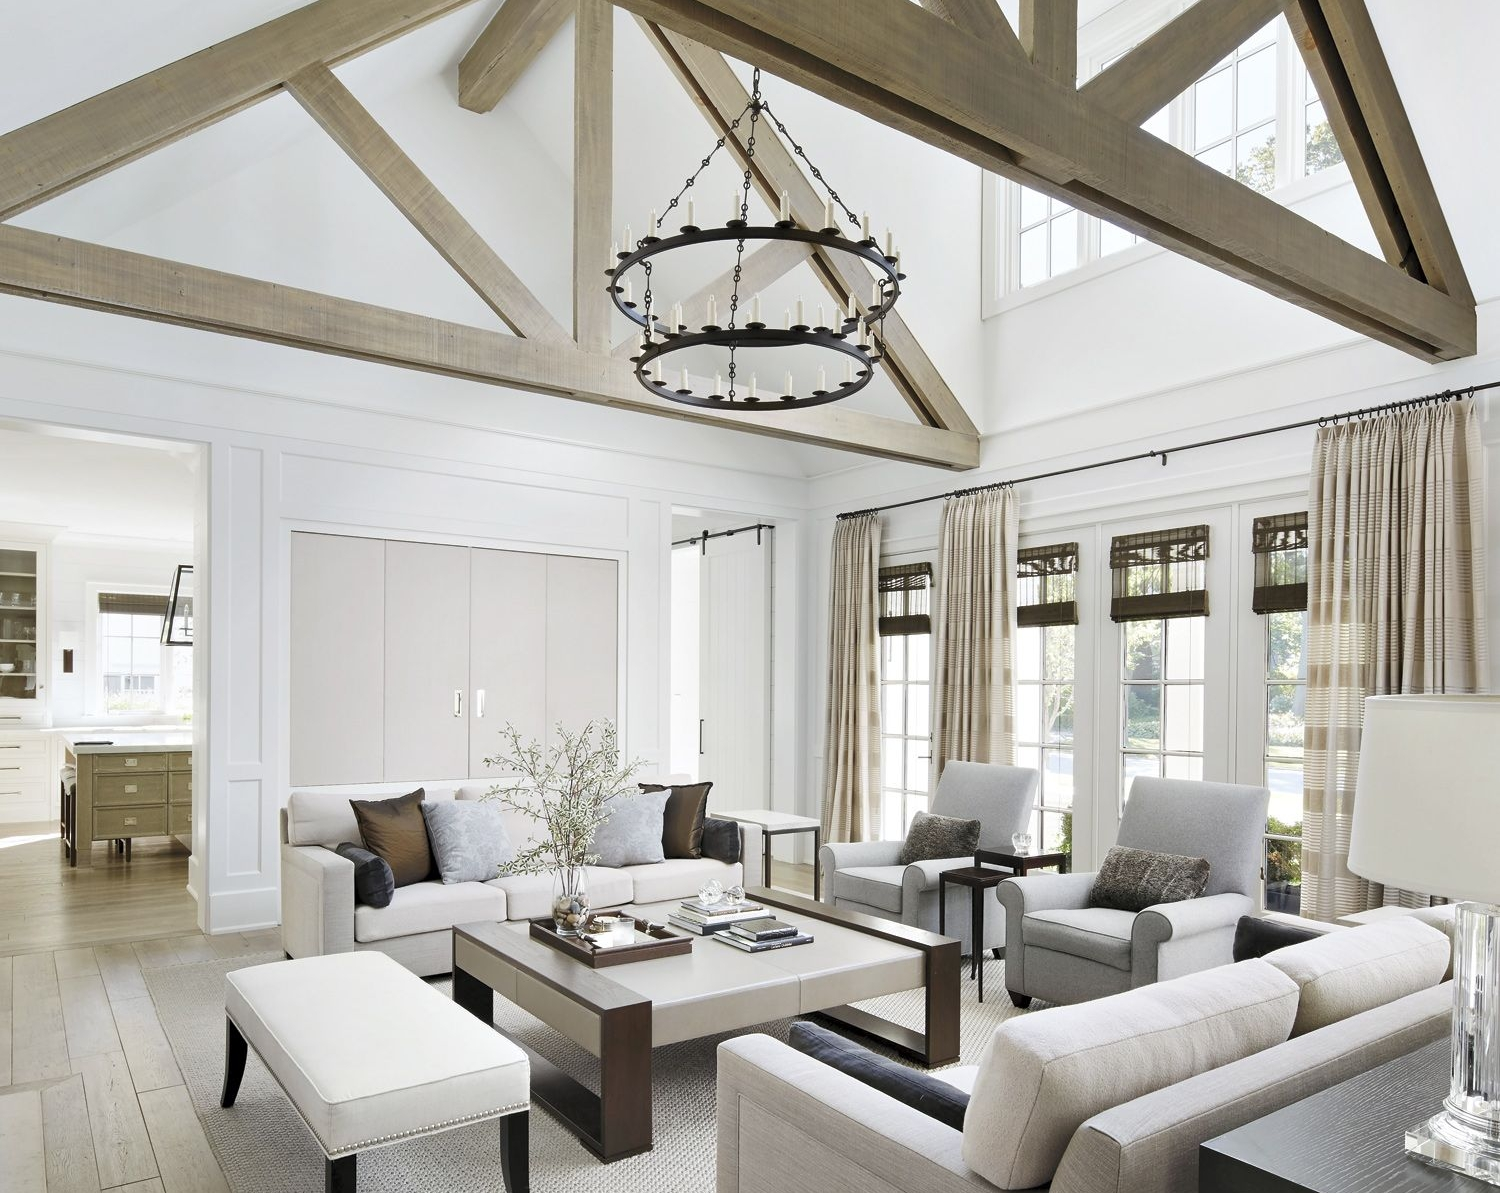 Hickman Design Associates via luxe interiors + design